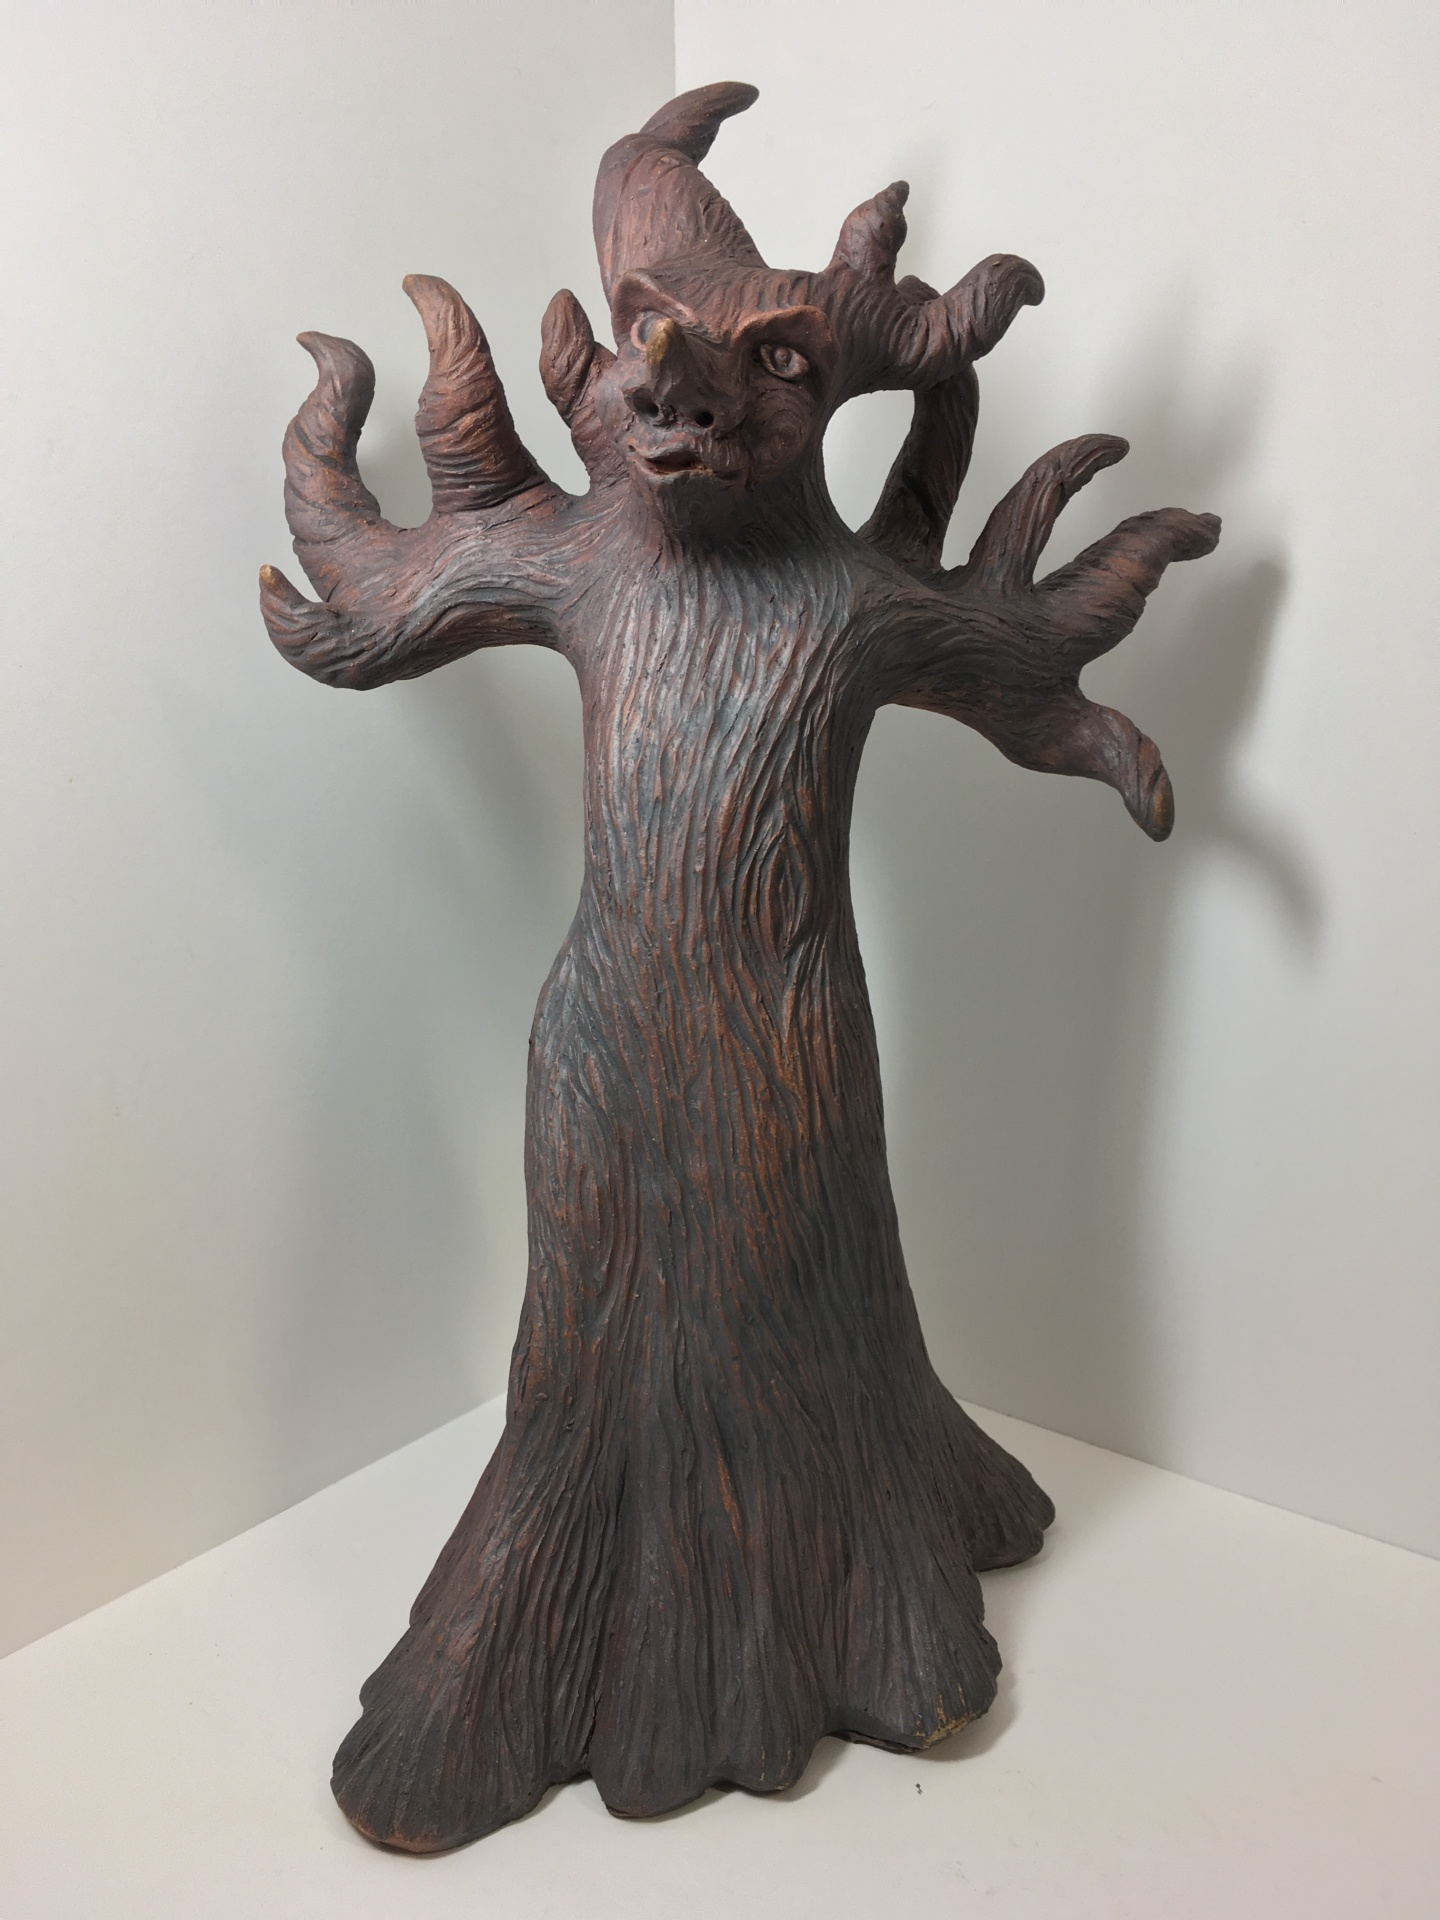 Dark Tree lord, tree spirit, druid spirit, fantasy sculpture, science fiction character